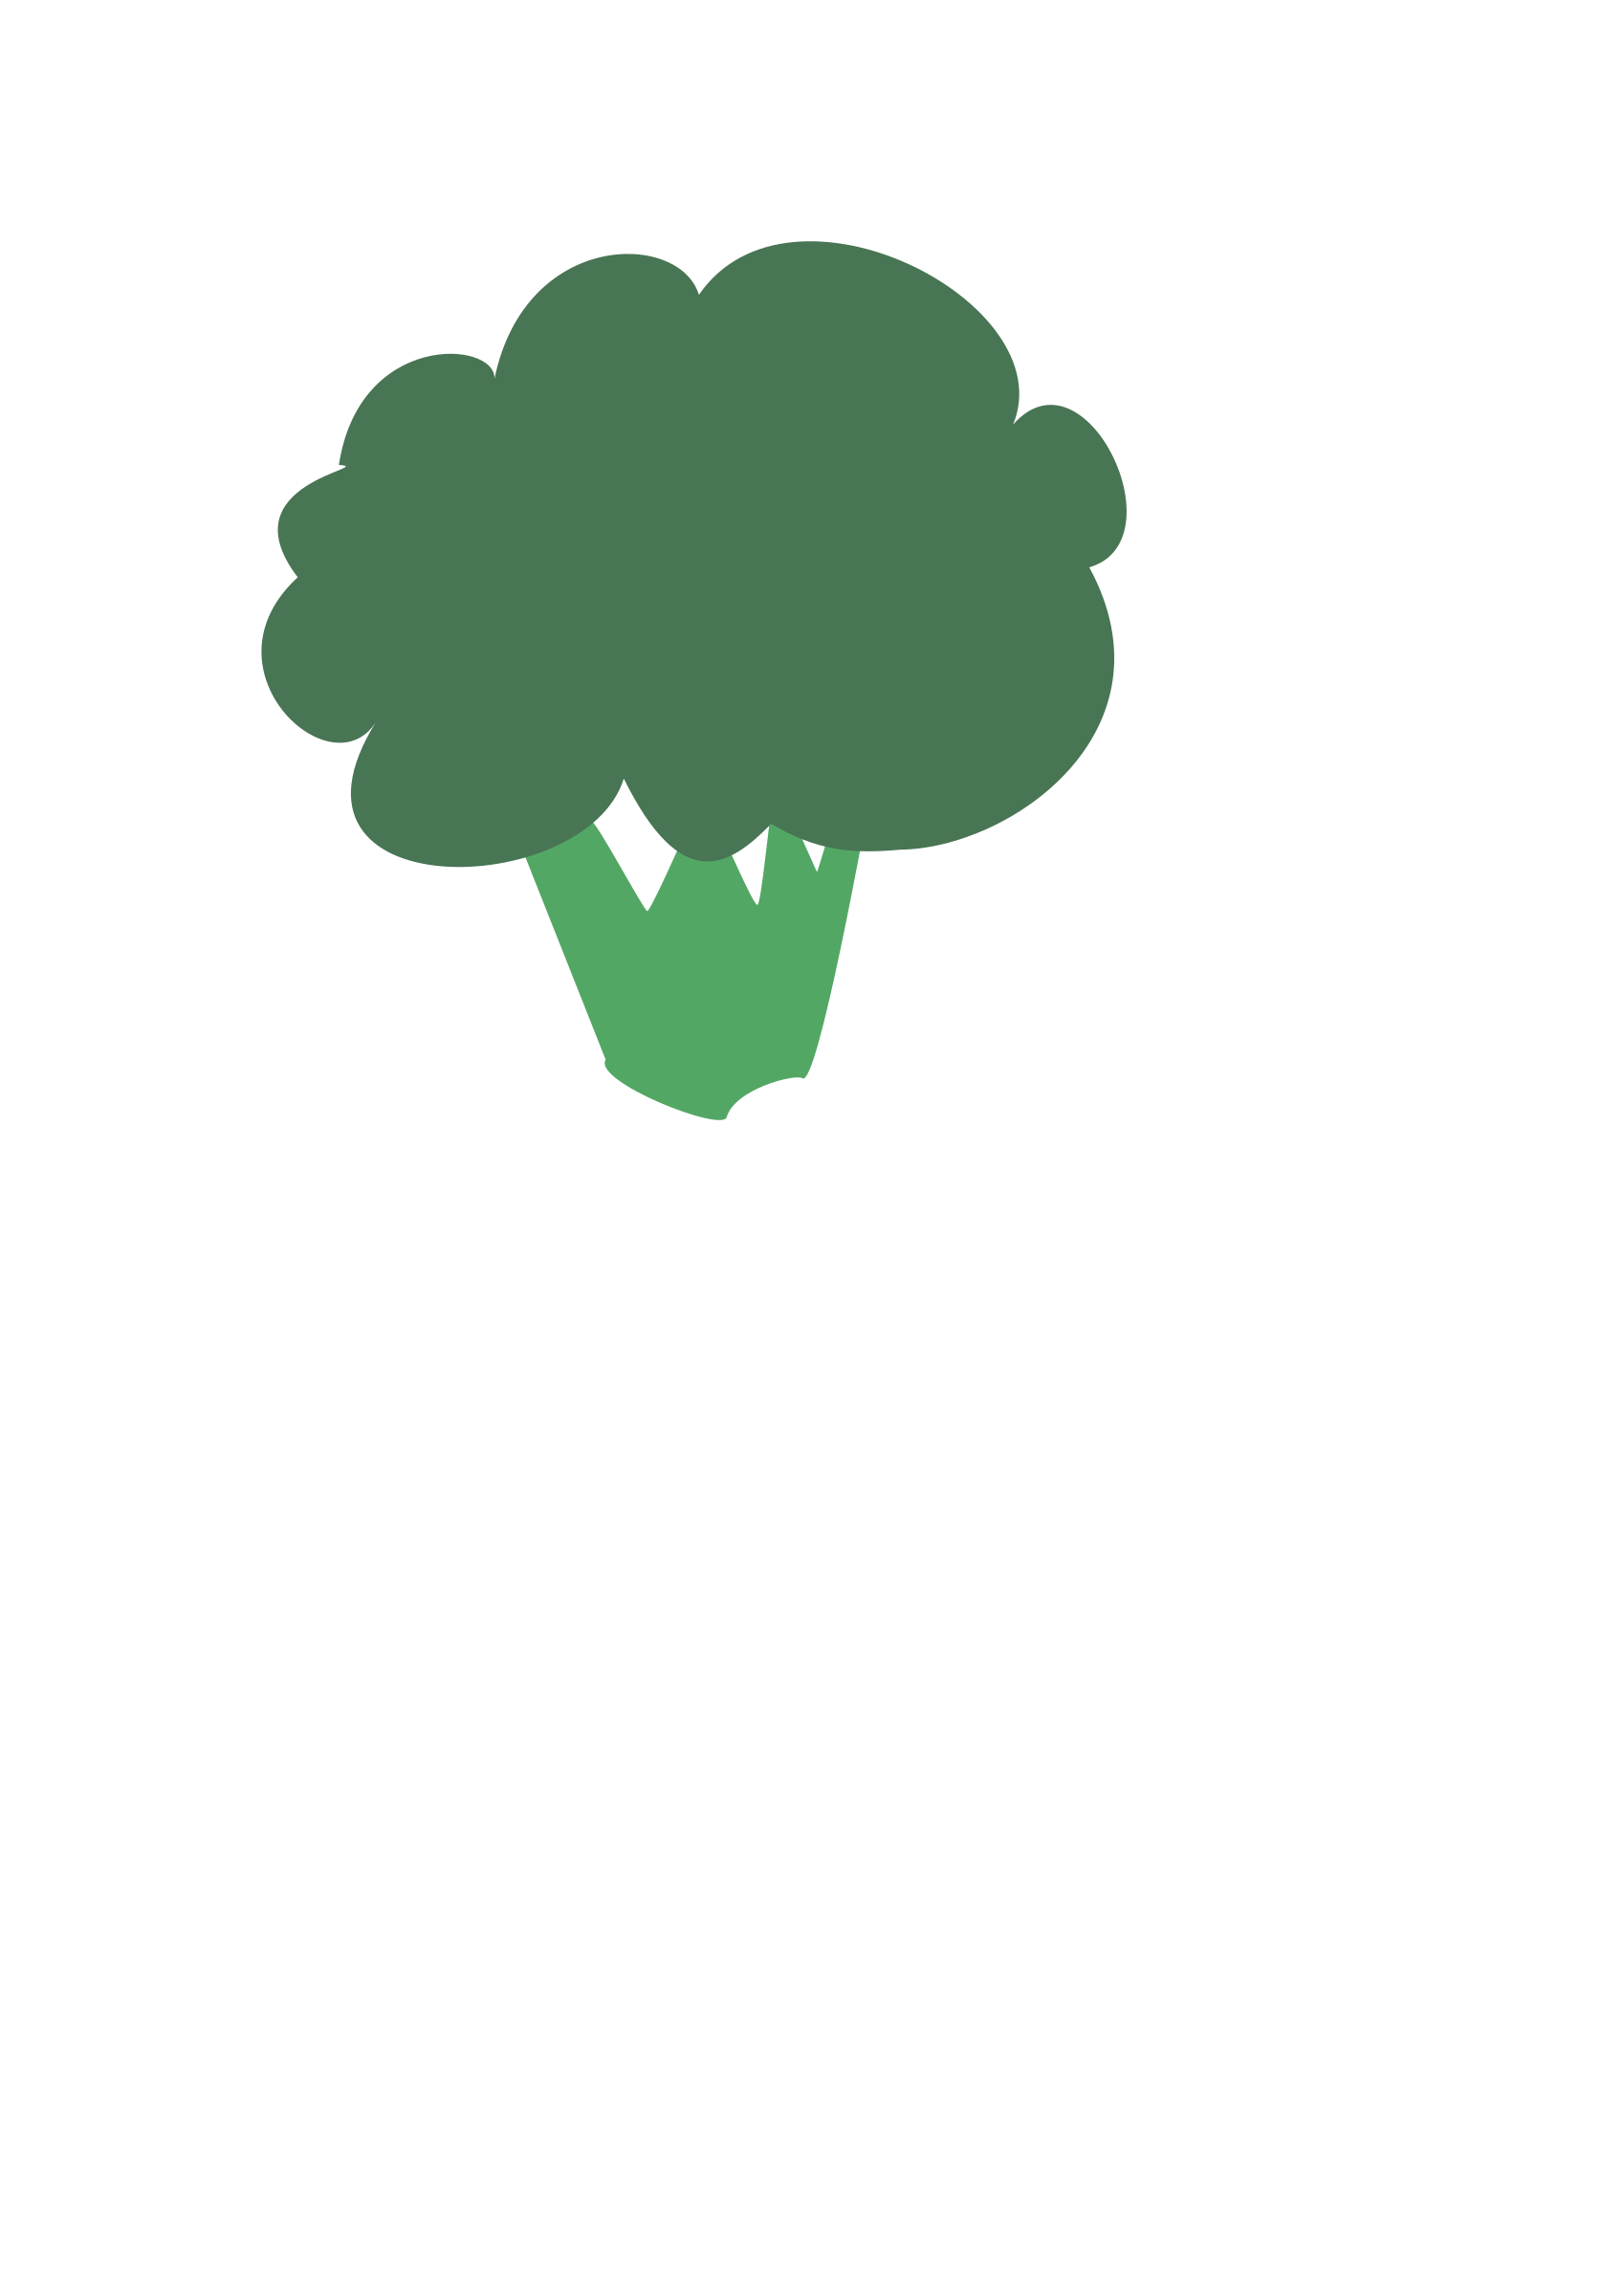 Broccoli - no lineart by basicavisual